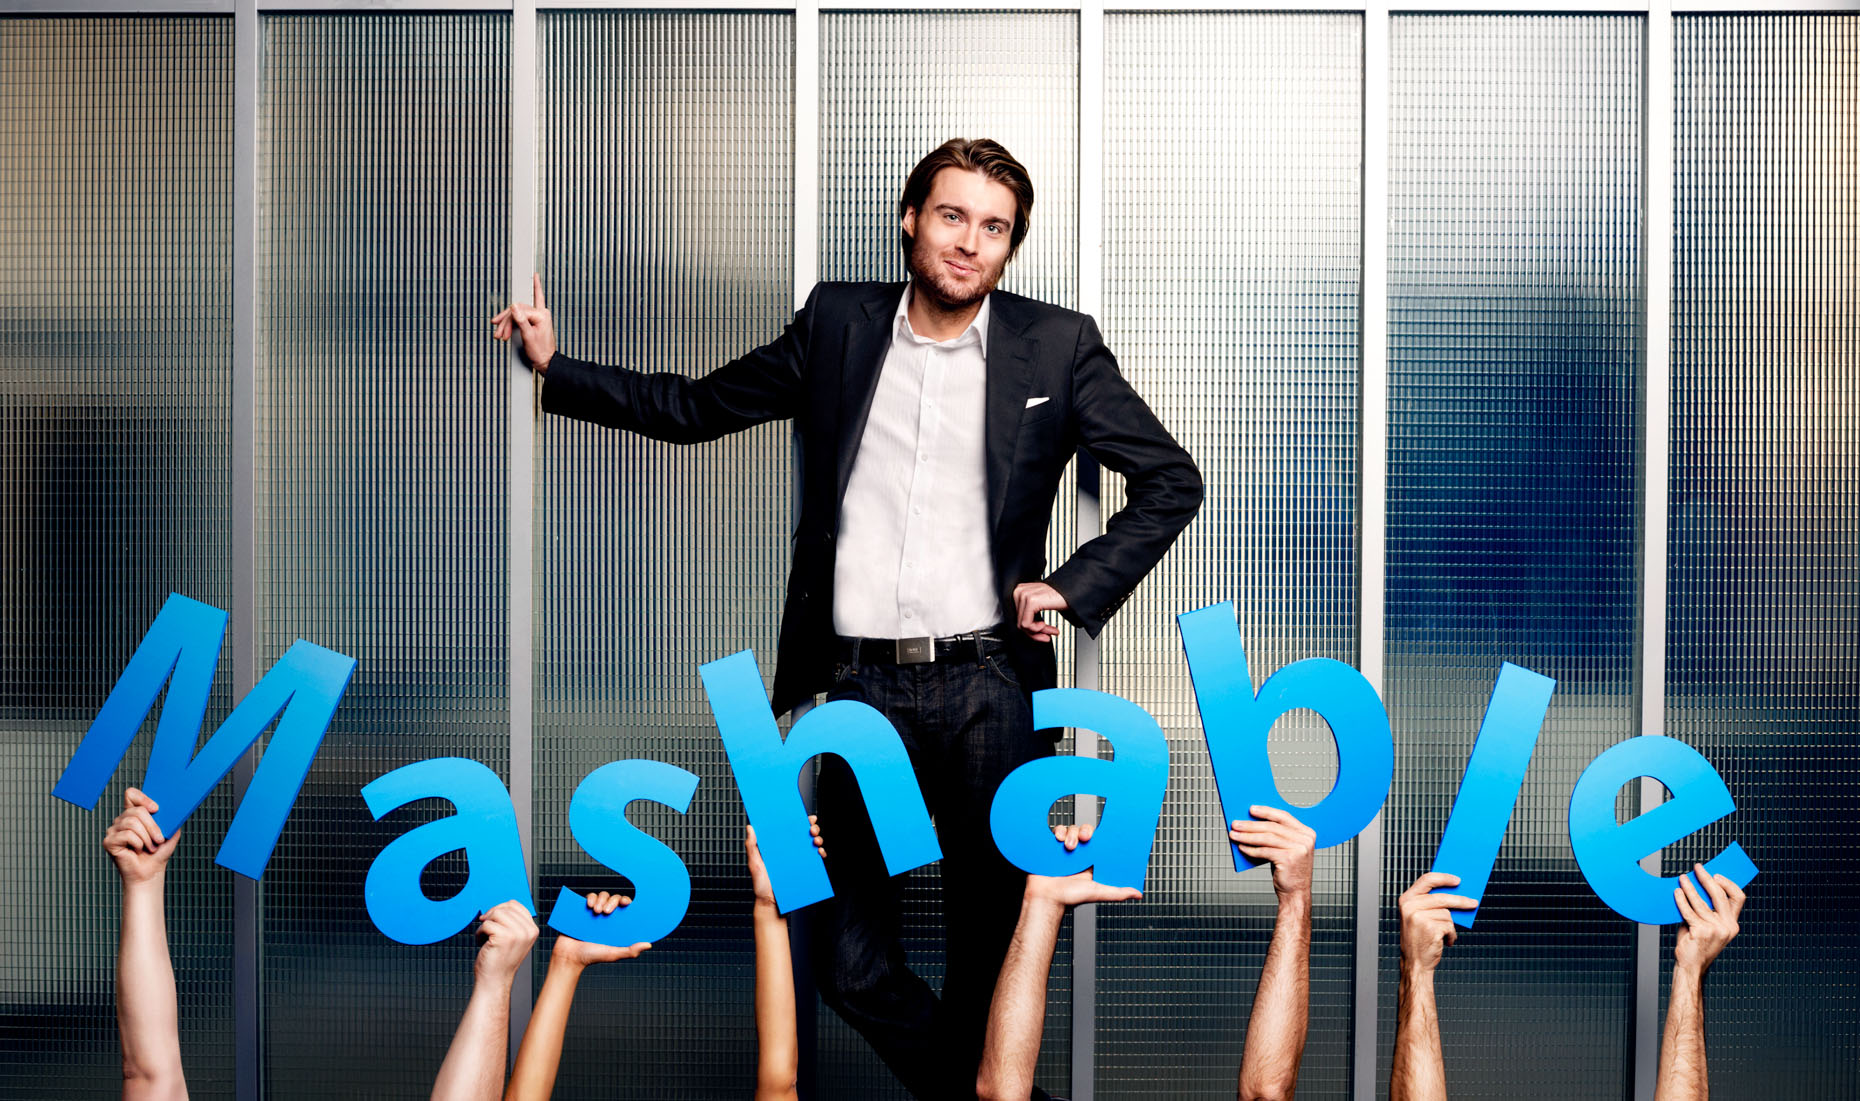 Celebrity Business Portrait - Editorial - Pete Cashmore - Mashable